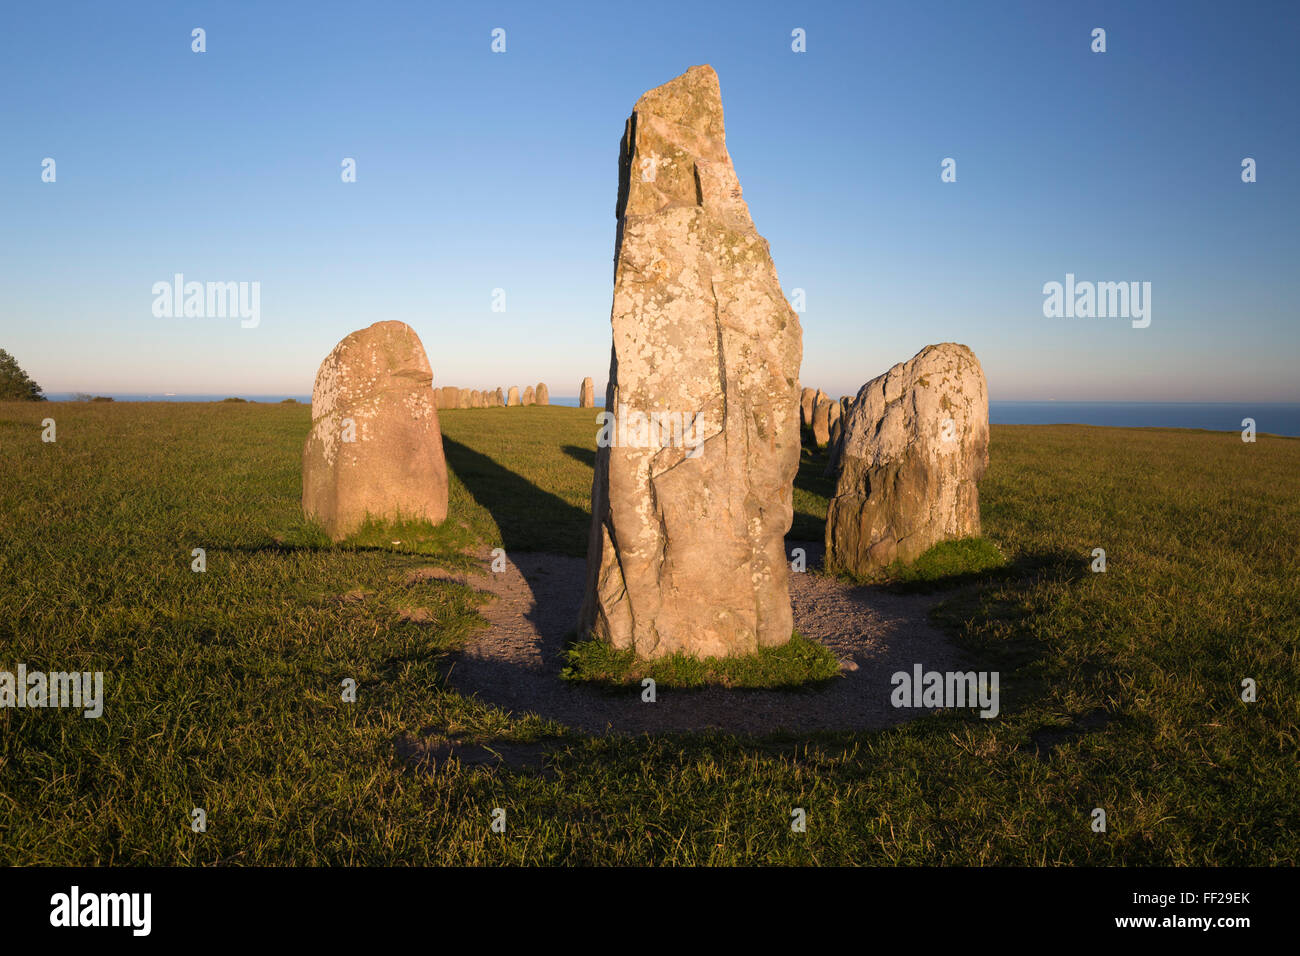 Boat shaped standing stones of ARMes Stenar, Kaseberga, Skane, South Sweden, Sweden, Scandinavia, Europe - Stock Image